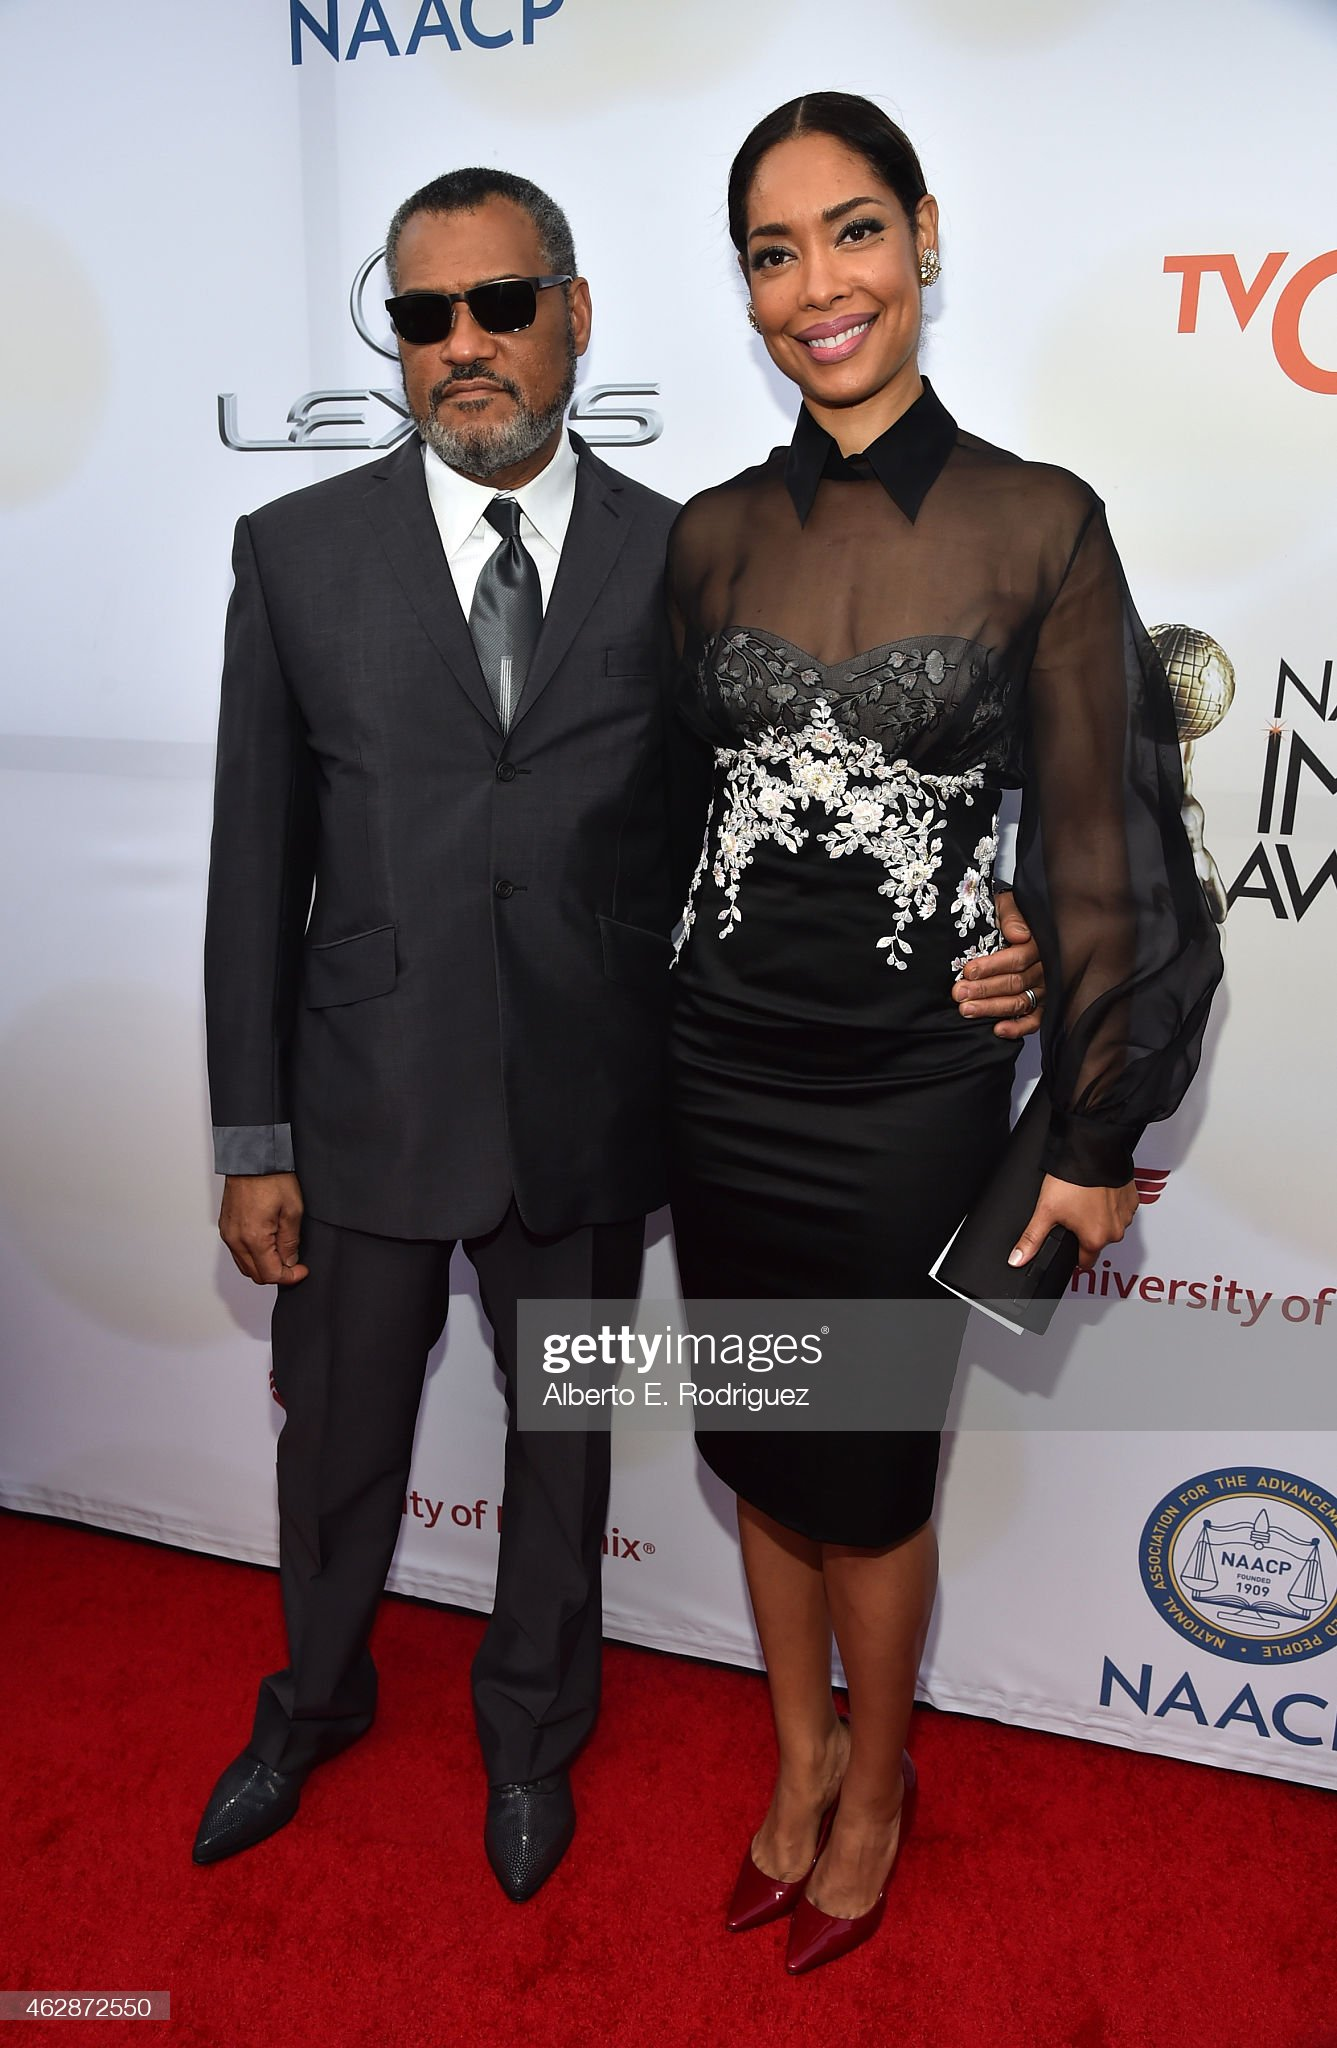 ¿Cuánto mide Laurence Fishburne? - Real height Actors-laurence-fishburne-and-gina-torres-attend-the-46th-naacp-image-picture-id462872550?s=2048x2048